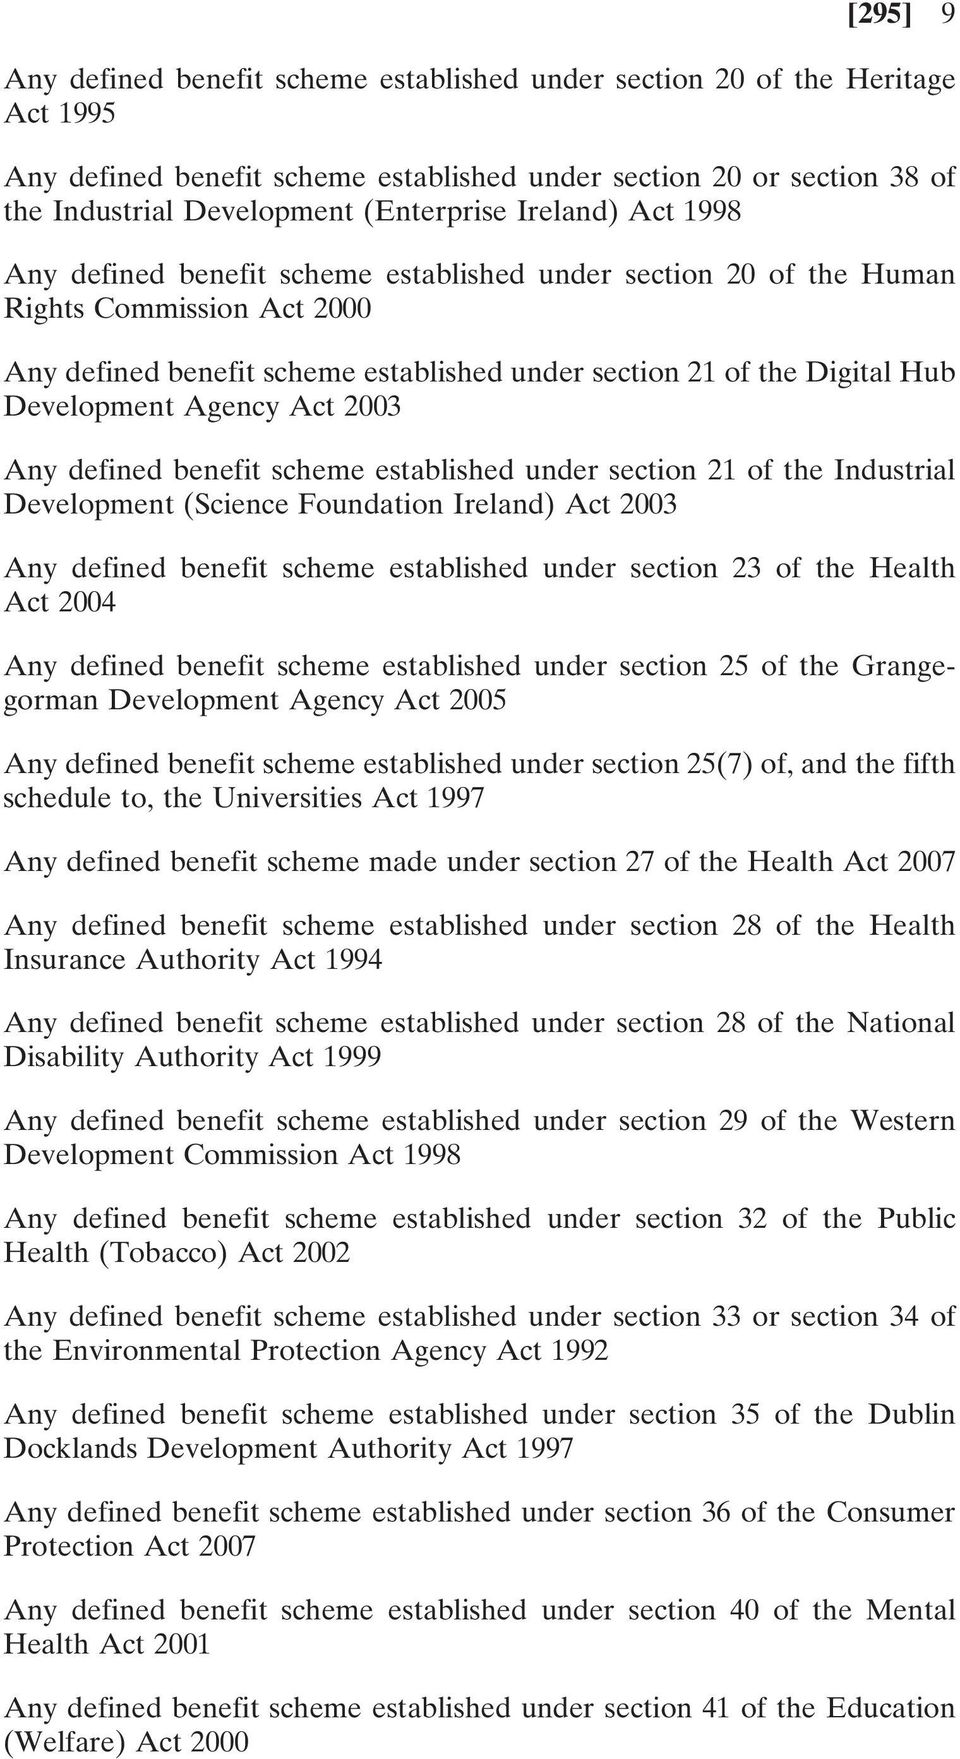 Hub Development Agency Act 2003 Any defined benefit scheme established under section 21 of the Industrial Development (Science Foundation Ireland) Act 2003 Any defined benefit scheme established